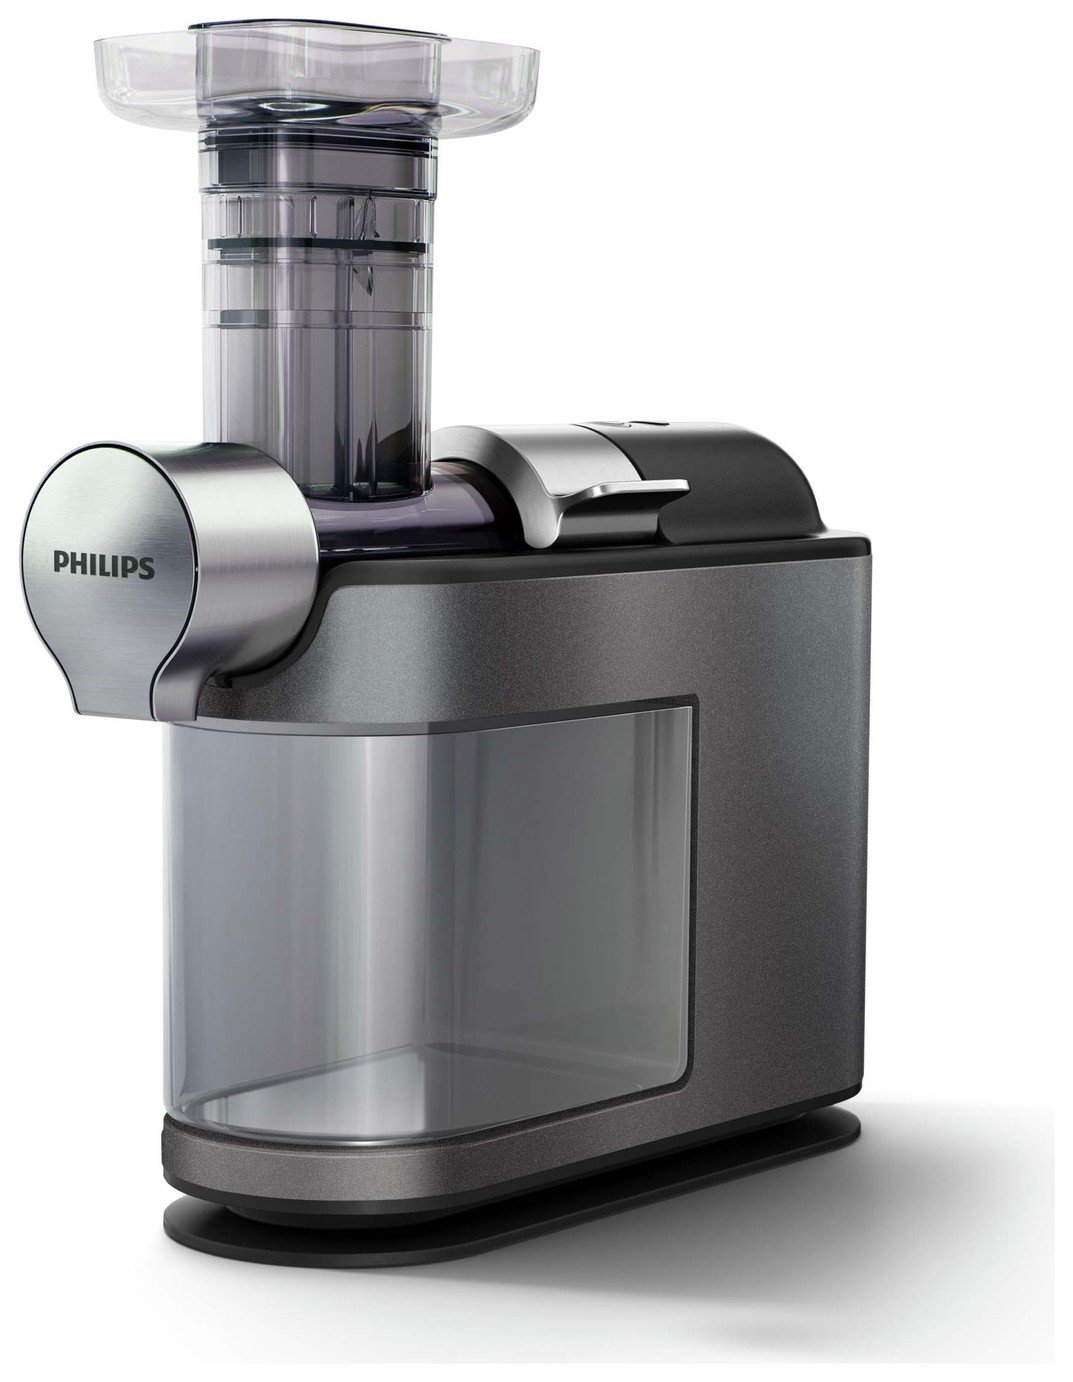 Philips HR1947 Avance Micro Masticating Slow Juicer